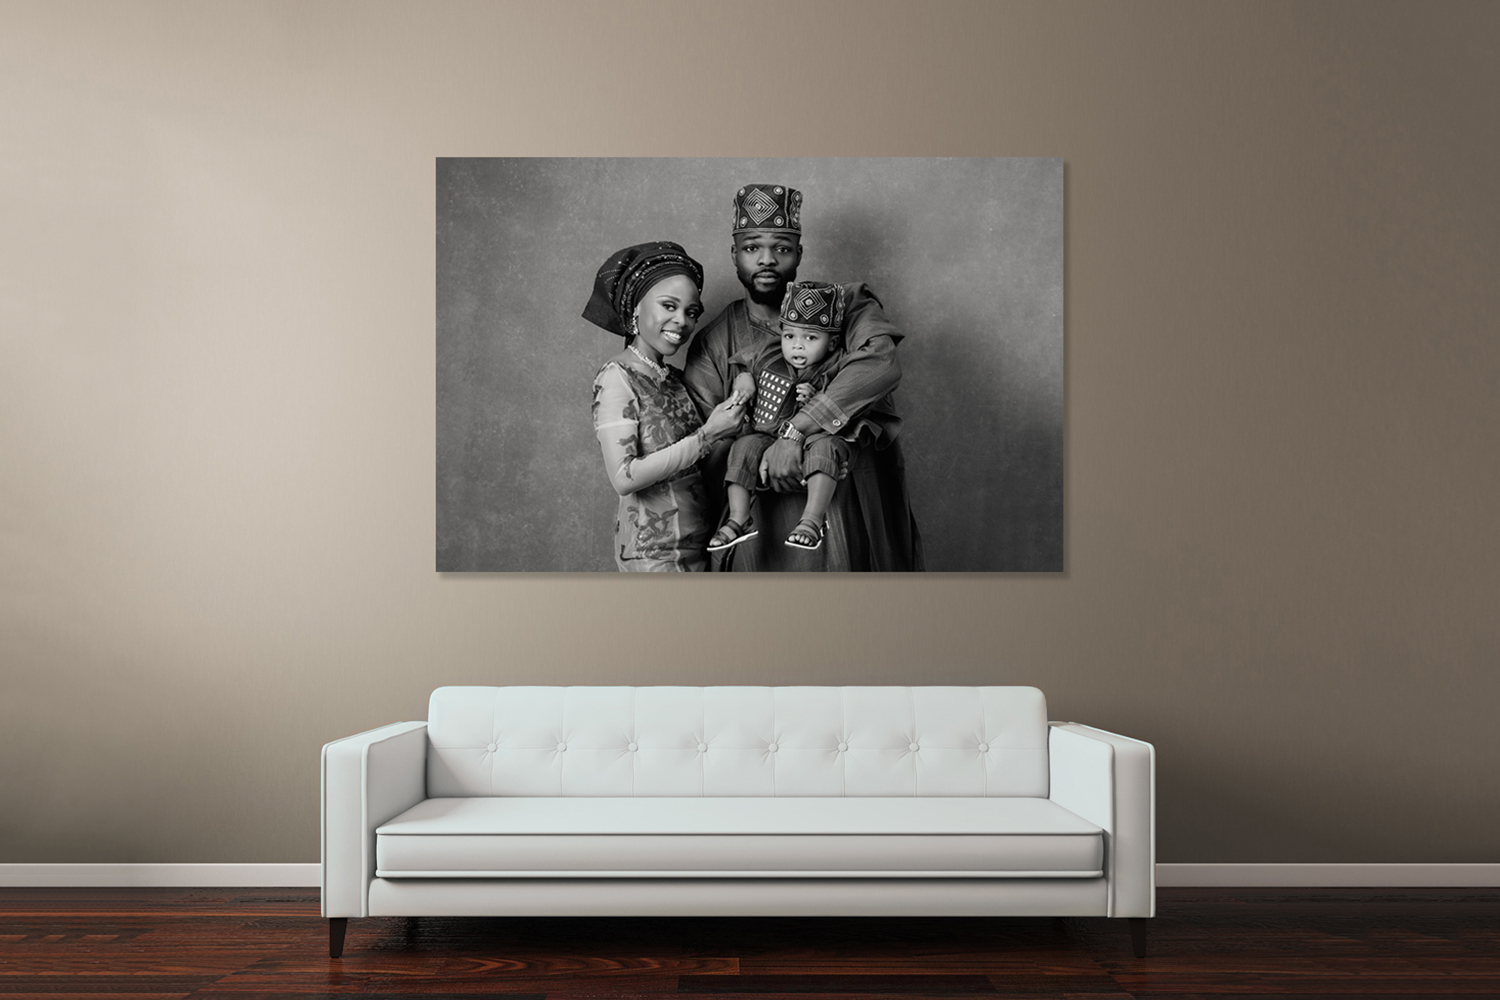 Family Photography for the wall by Mayumi Acosta Photography.jpg